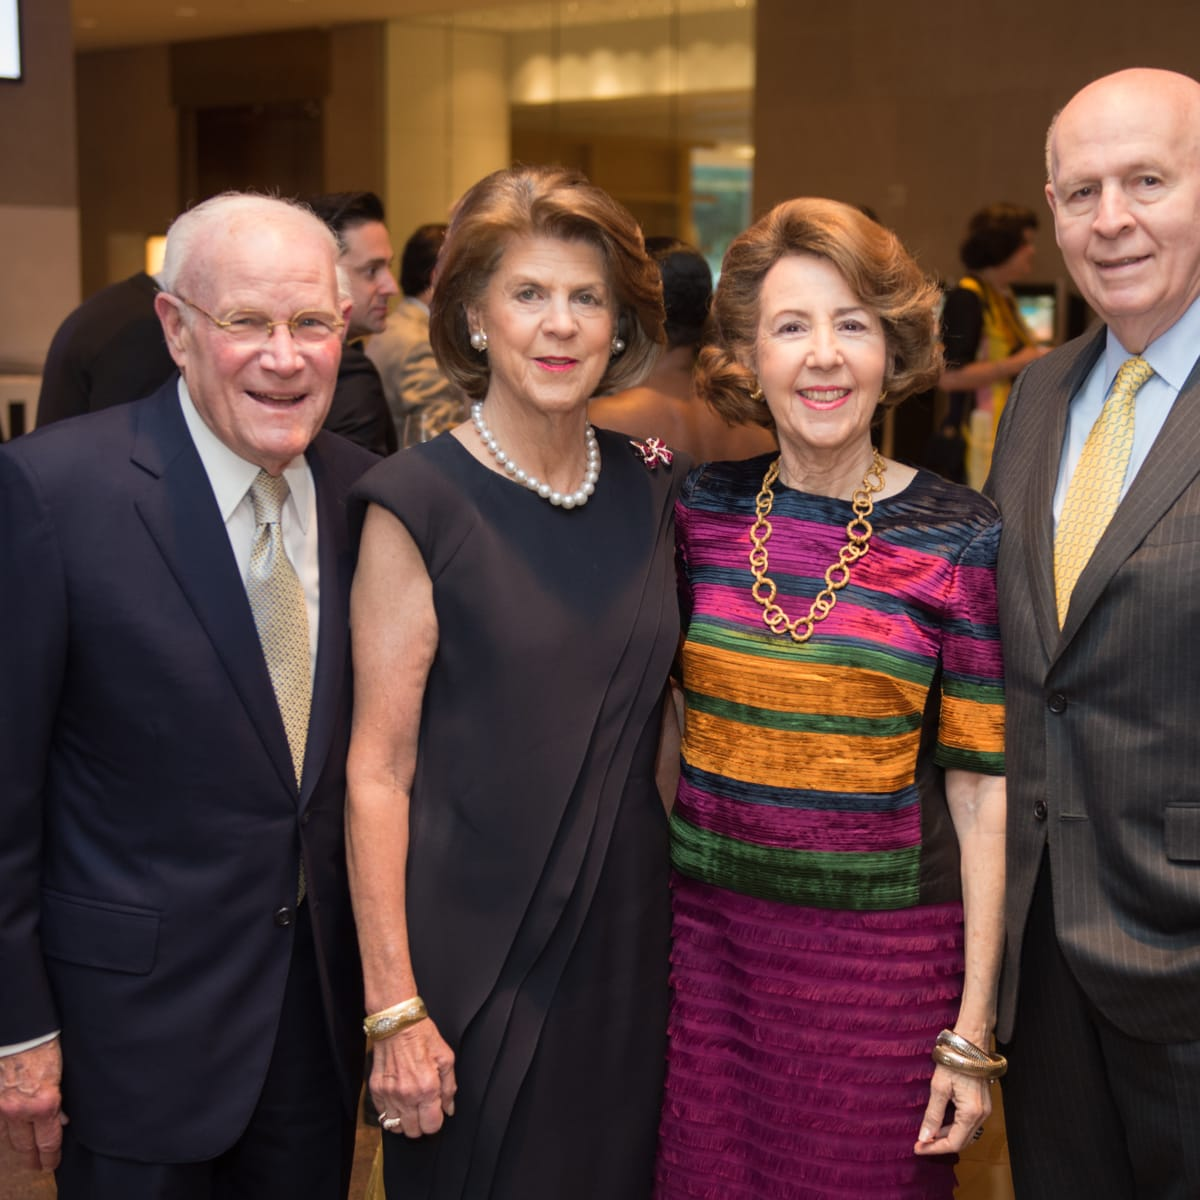 News, Shelby, MFAH Rothko opening, Sept. 2015 Rodney and Judy Margolis, Gail and Louis Adler